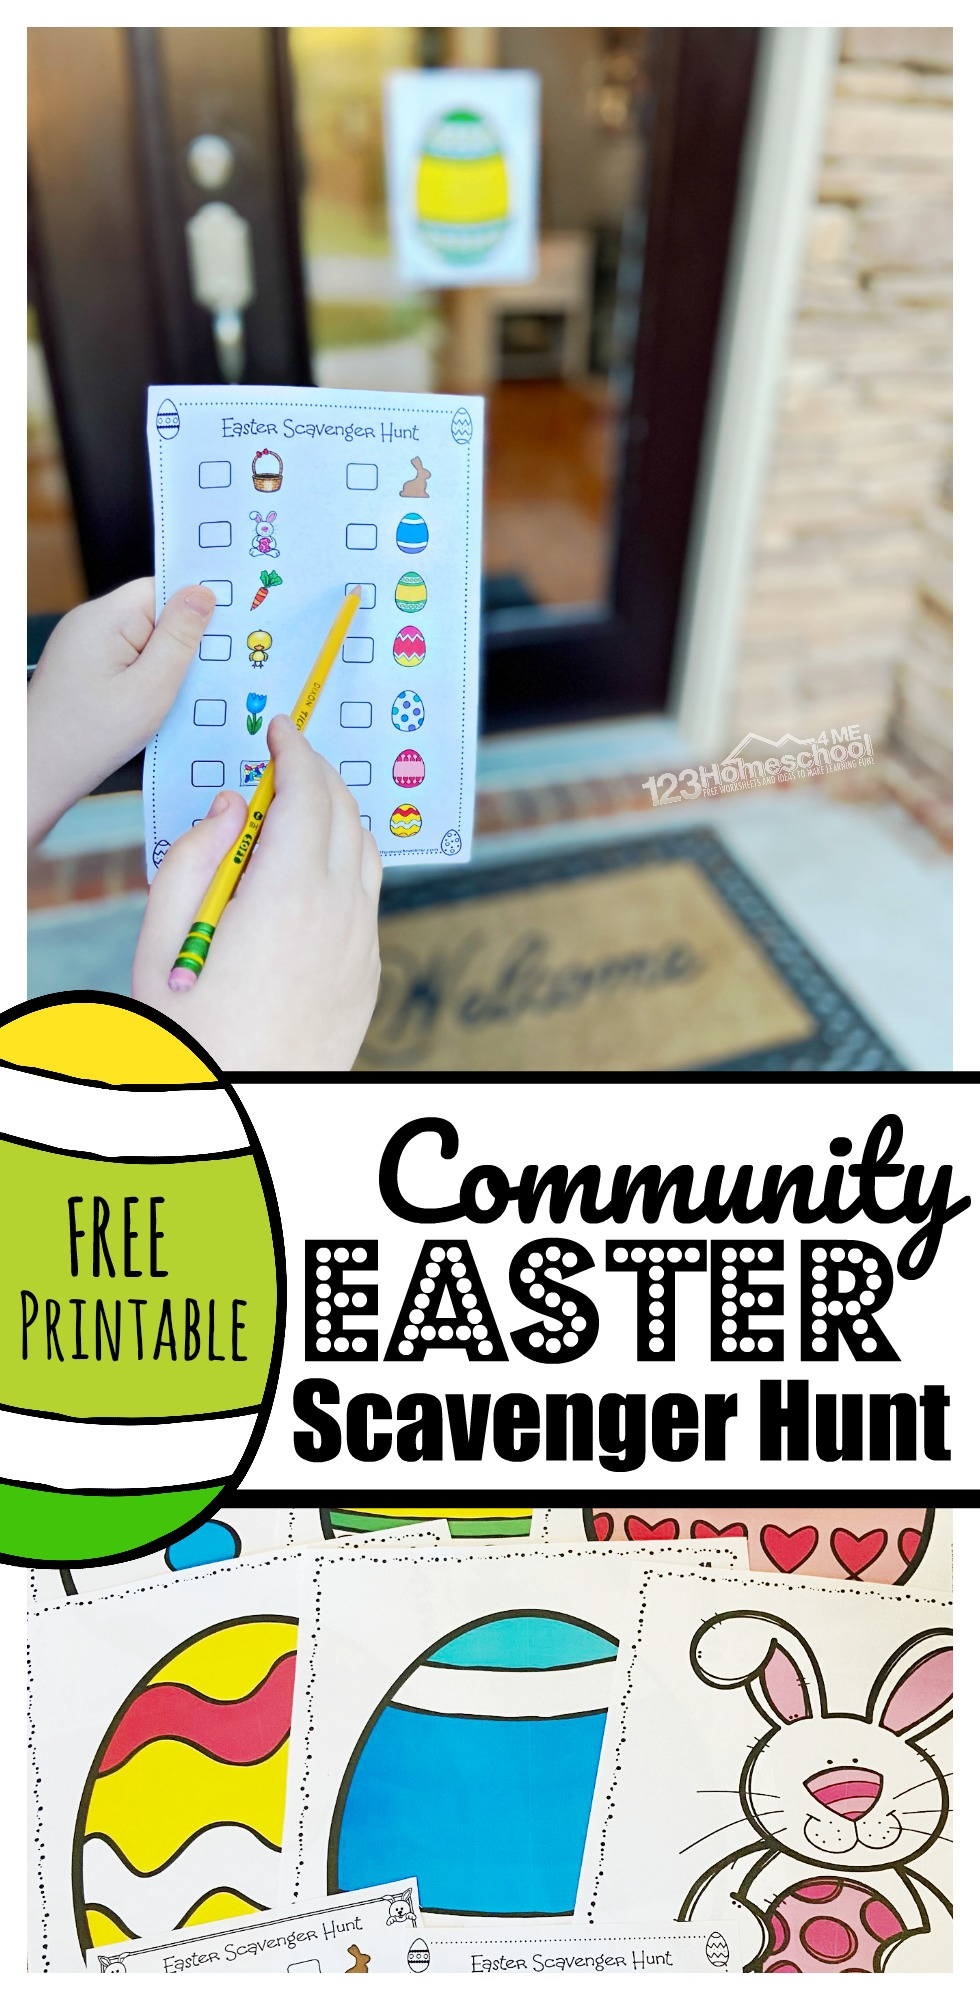 FREE Printable Community Easter Scavenger Hunt - Practice social distancing and still have FUN this April. Neighbors print clues (in color or black & white) and families can enjoy fresh air, exercise, and participate in a fun Easter Activity in their community! Fun easter game for toddler, preschool, pre k, kindegarten, and elementary age kids.